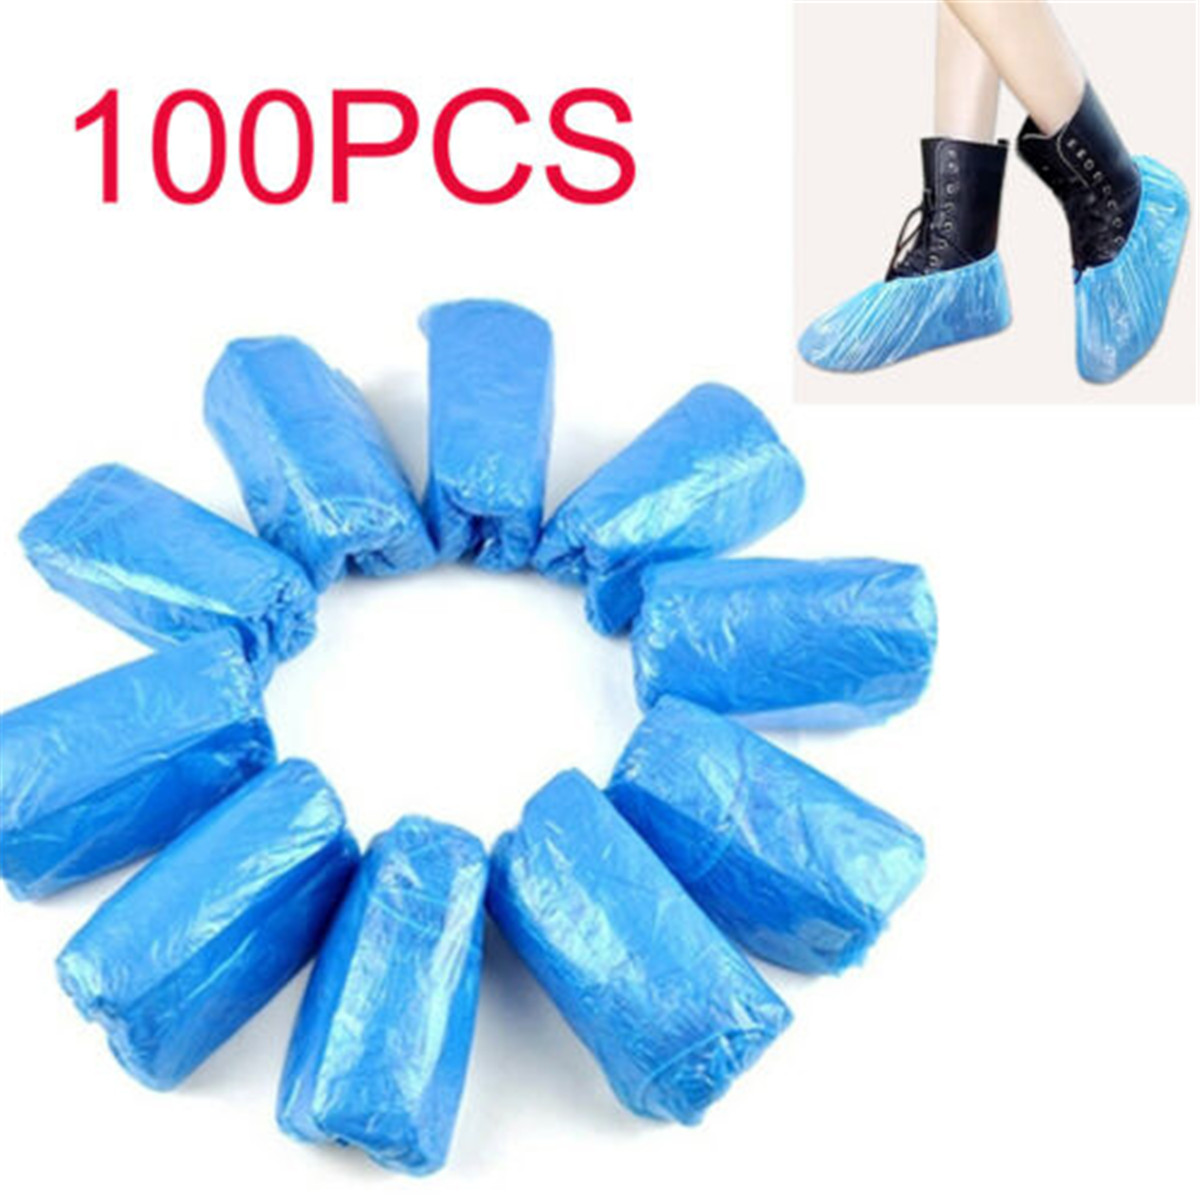 100Pcs Disposable Anti Slip Shoe Covers Cleaning Protective Overshoes Plastic